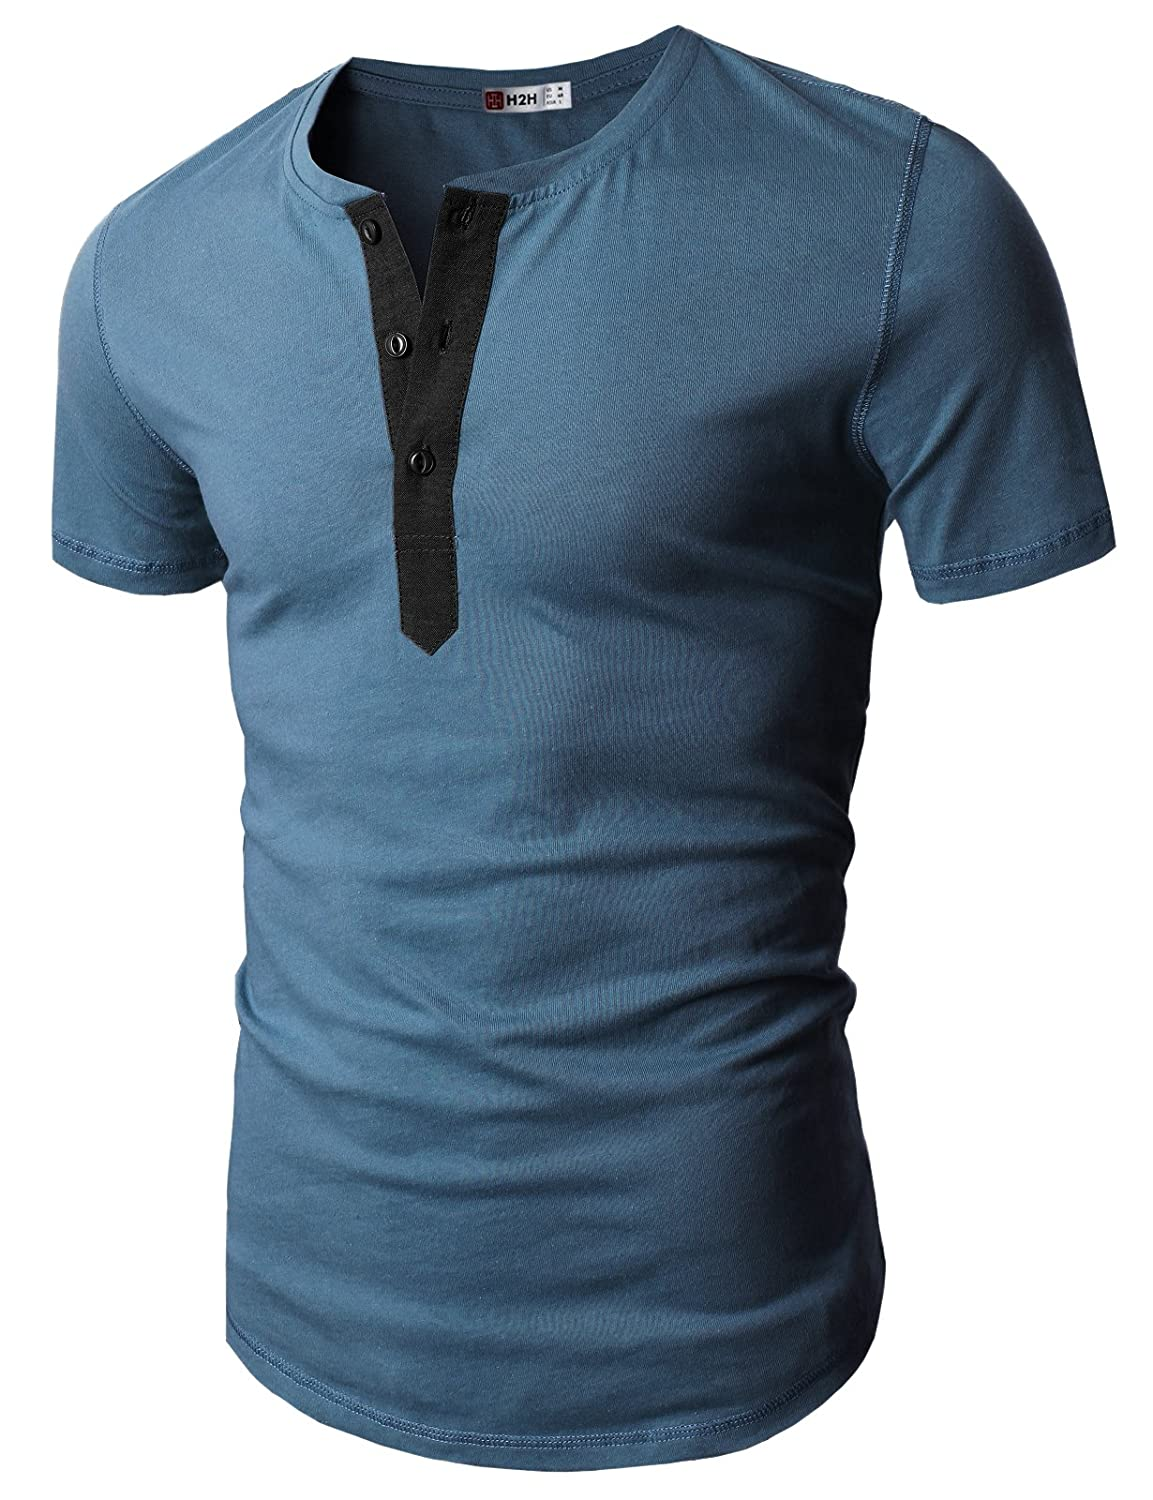 H2H Mens Casual Slim Fit Short Sleeve Henley T-Shirts Crew-Neck Basic Designed #D15S_KMT05S